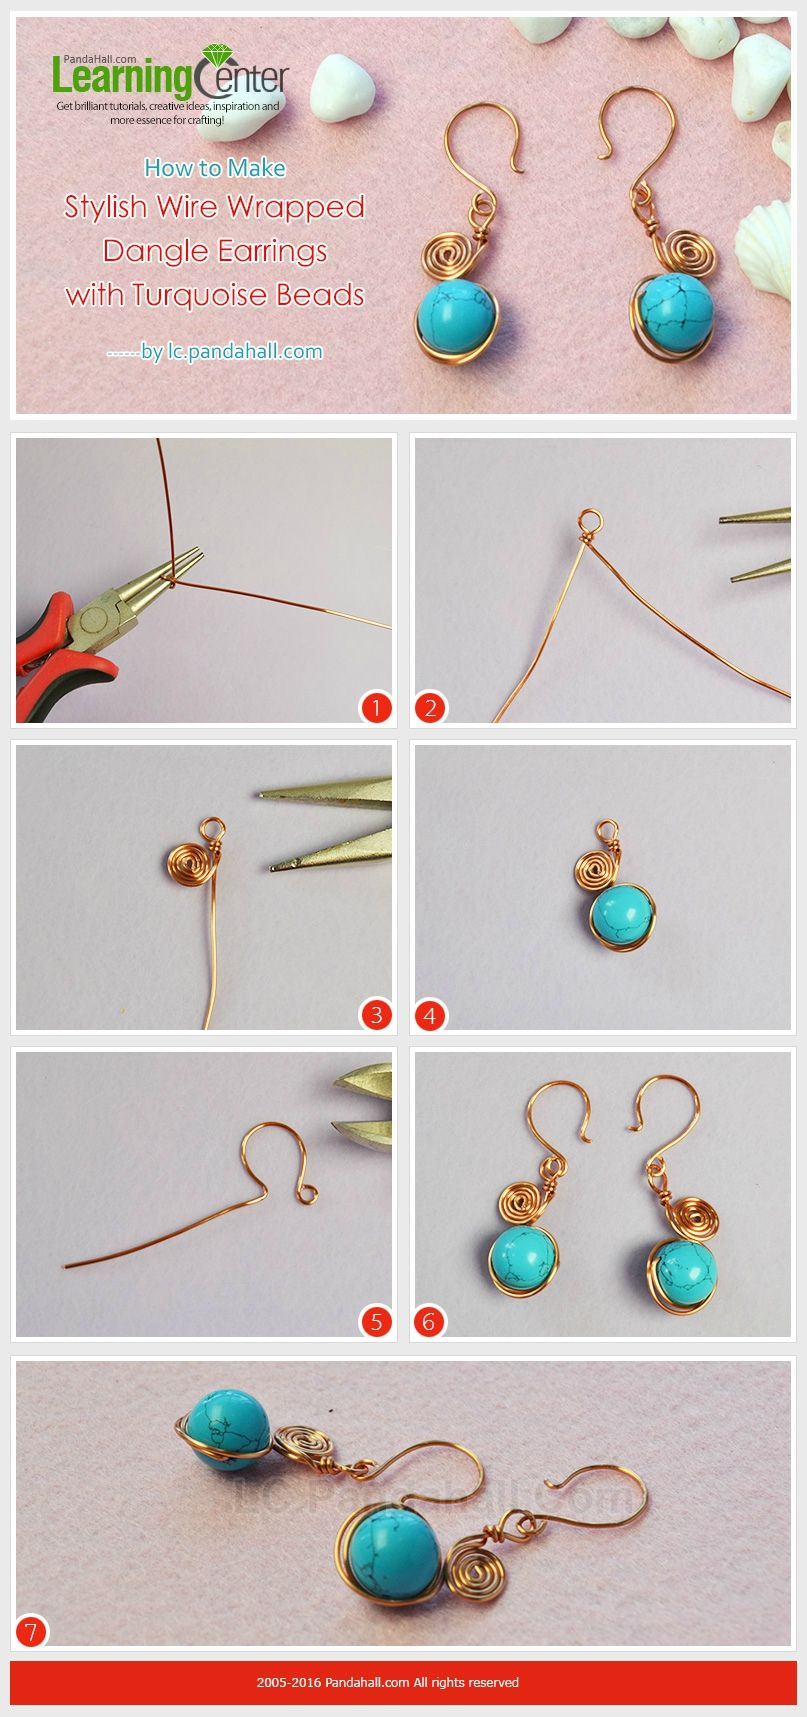 How-to-Make-Stylish-Wire-Wrapped-Dangle-Earrings-with-Turquoise ...